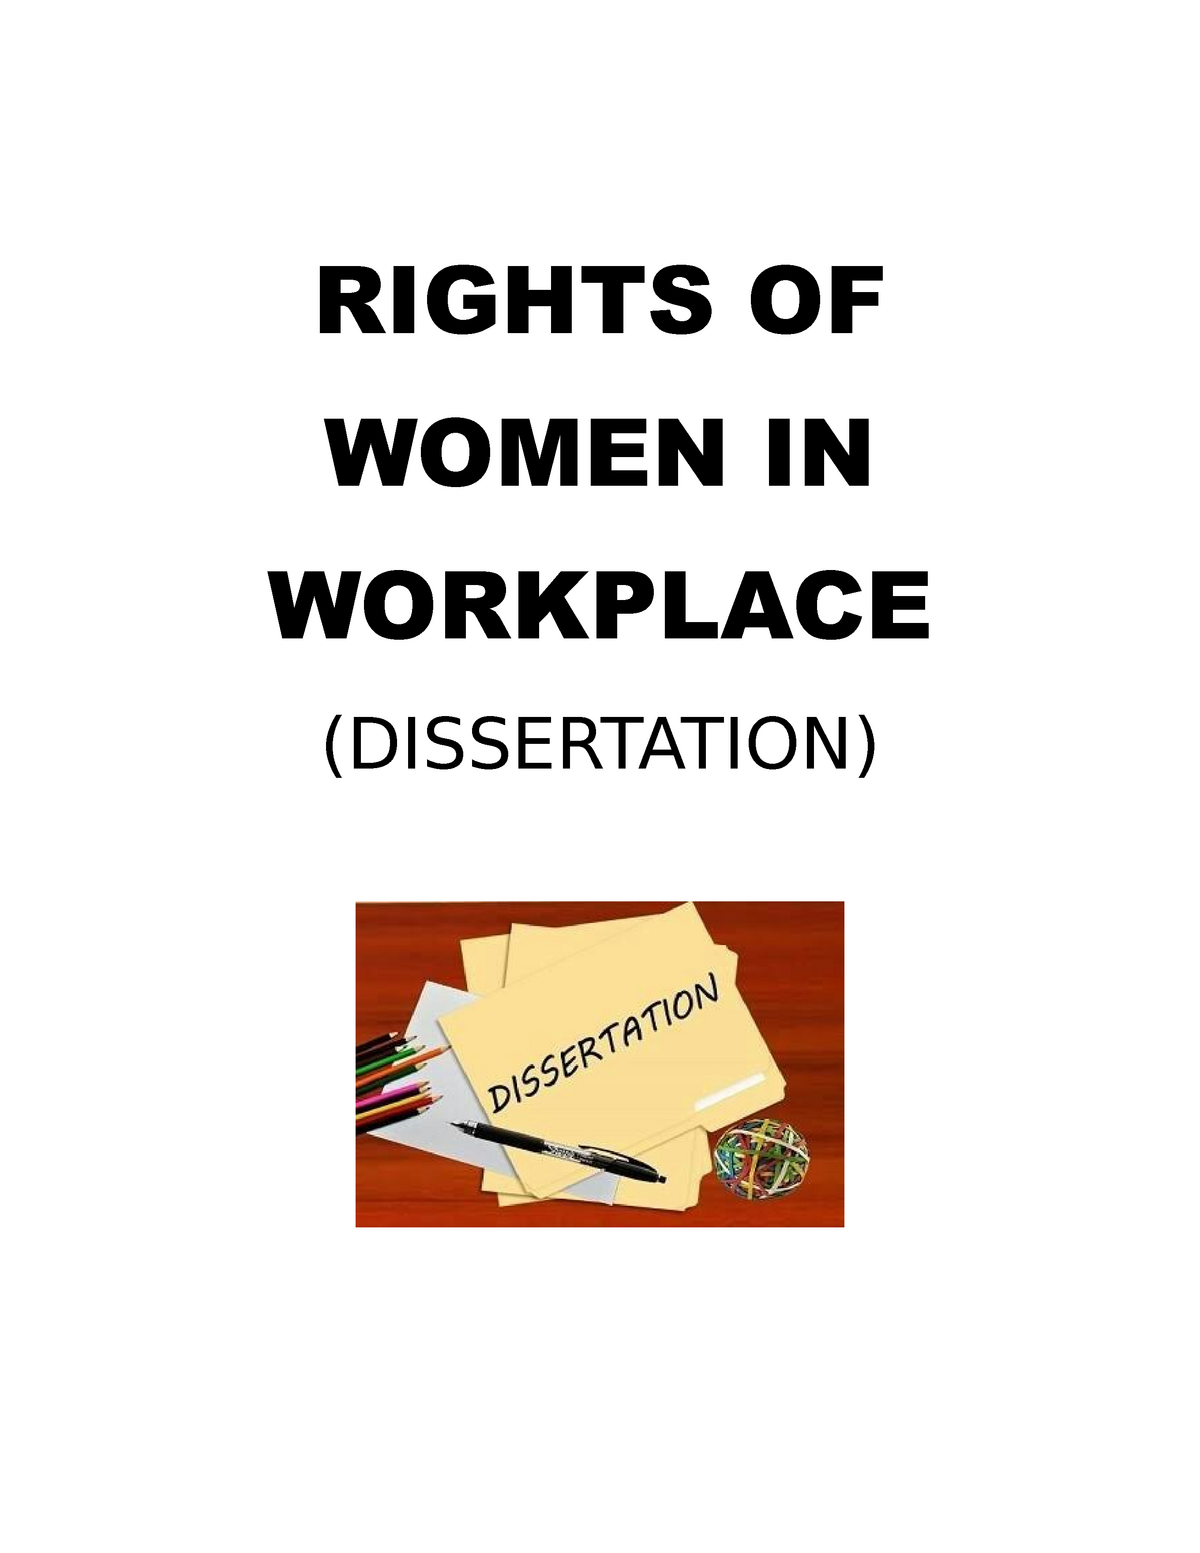 rights of women at workplace - UPSC Prelims: Environmental